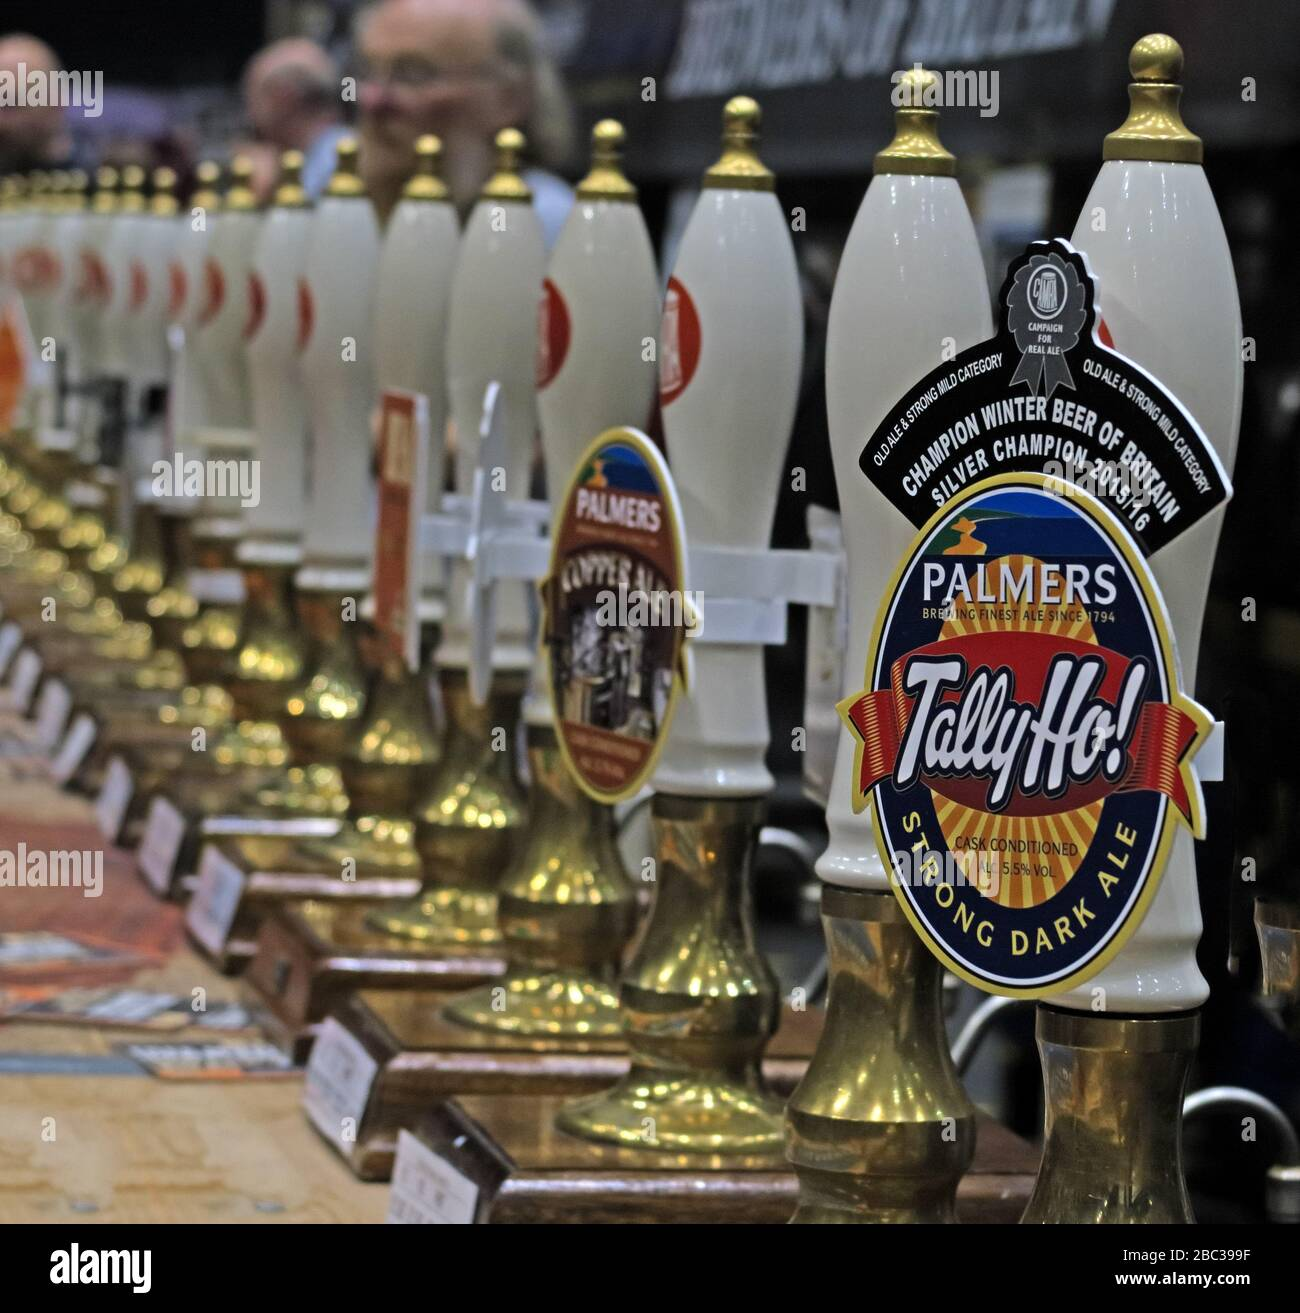 Tally Ho, Strong Dark Ale, Champion Winter Beer of Britain, at Manchester Beer Festival, Manchester Central 2017 Stock Photo